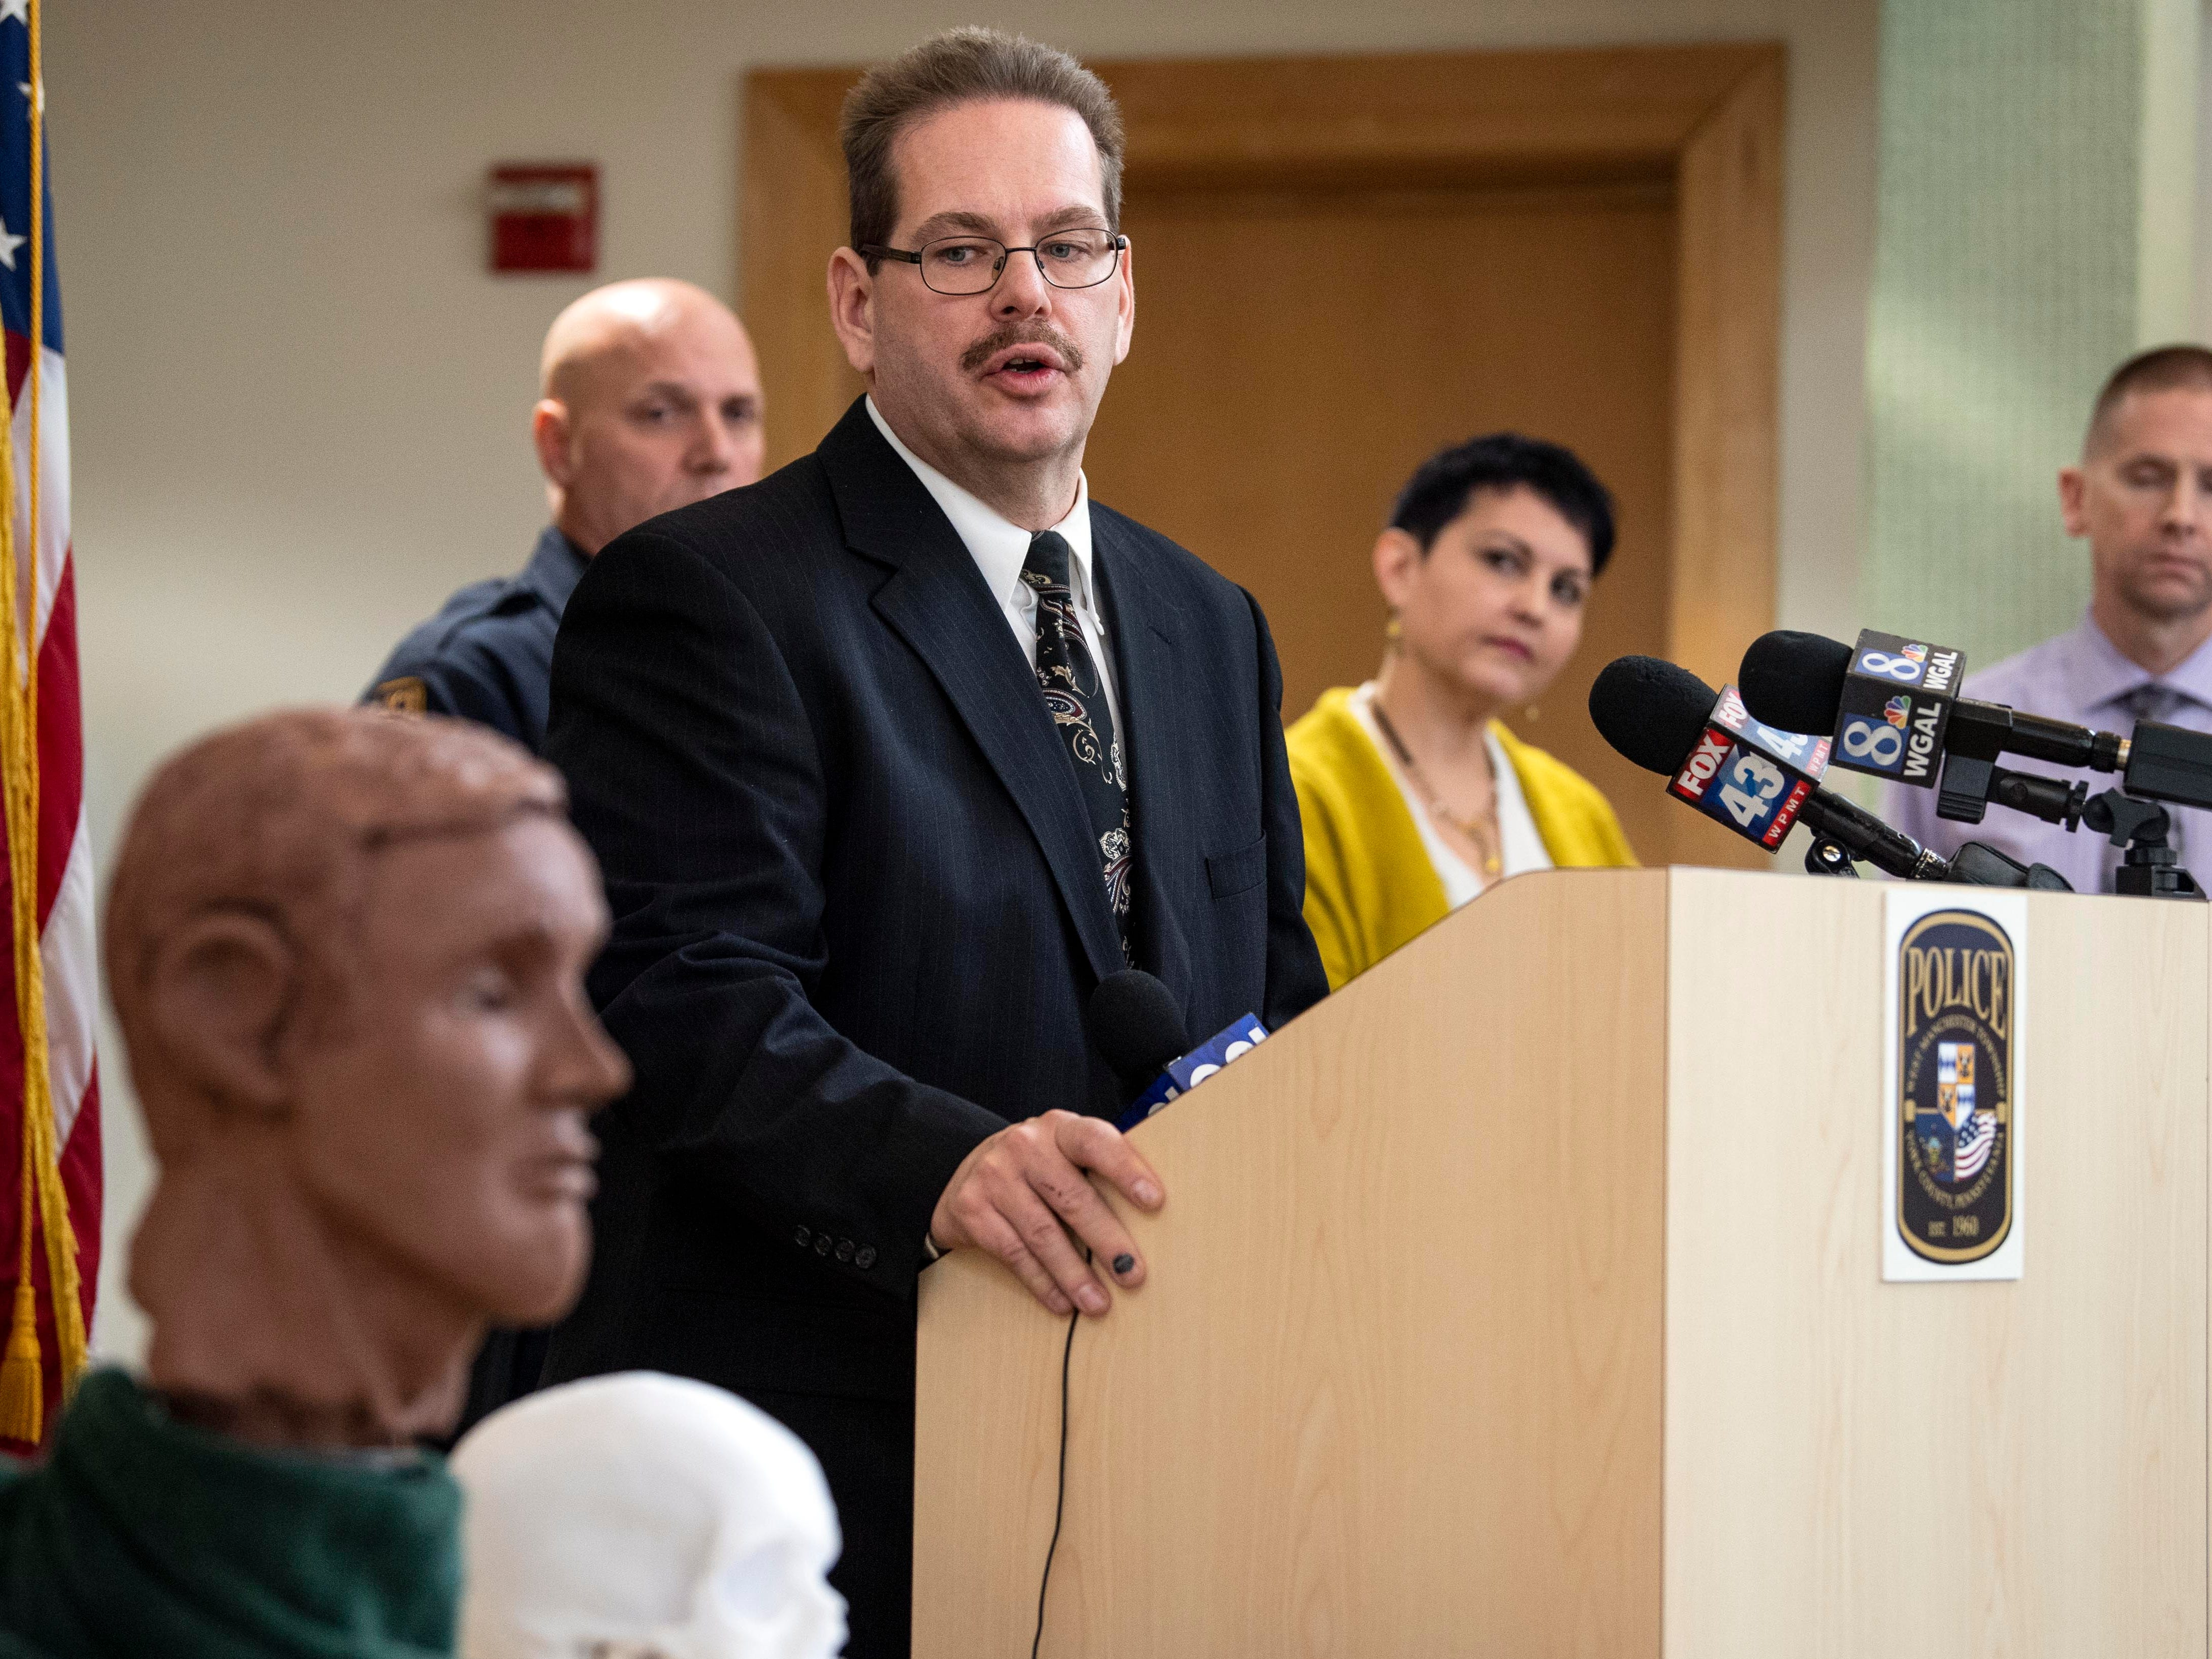 Officer Lance Krout, who is heading the investigation in the 2013 cold case, speaks about what is known about the victim, during a press conference on Thursday, Dec. 6, 2018. A forensic artists sculpted a clay bust and 3D-printed a skull to help show the public what the victim could've looked like.